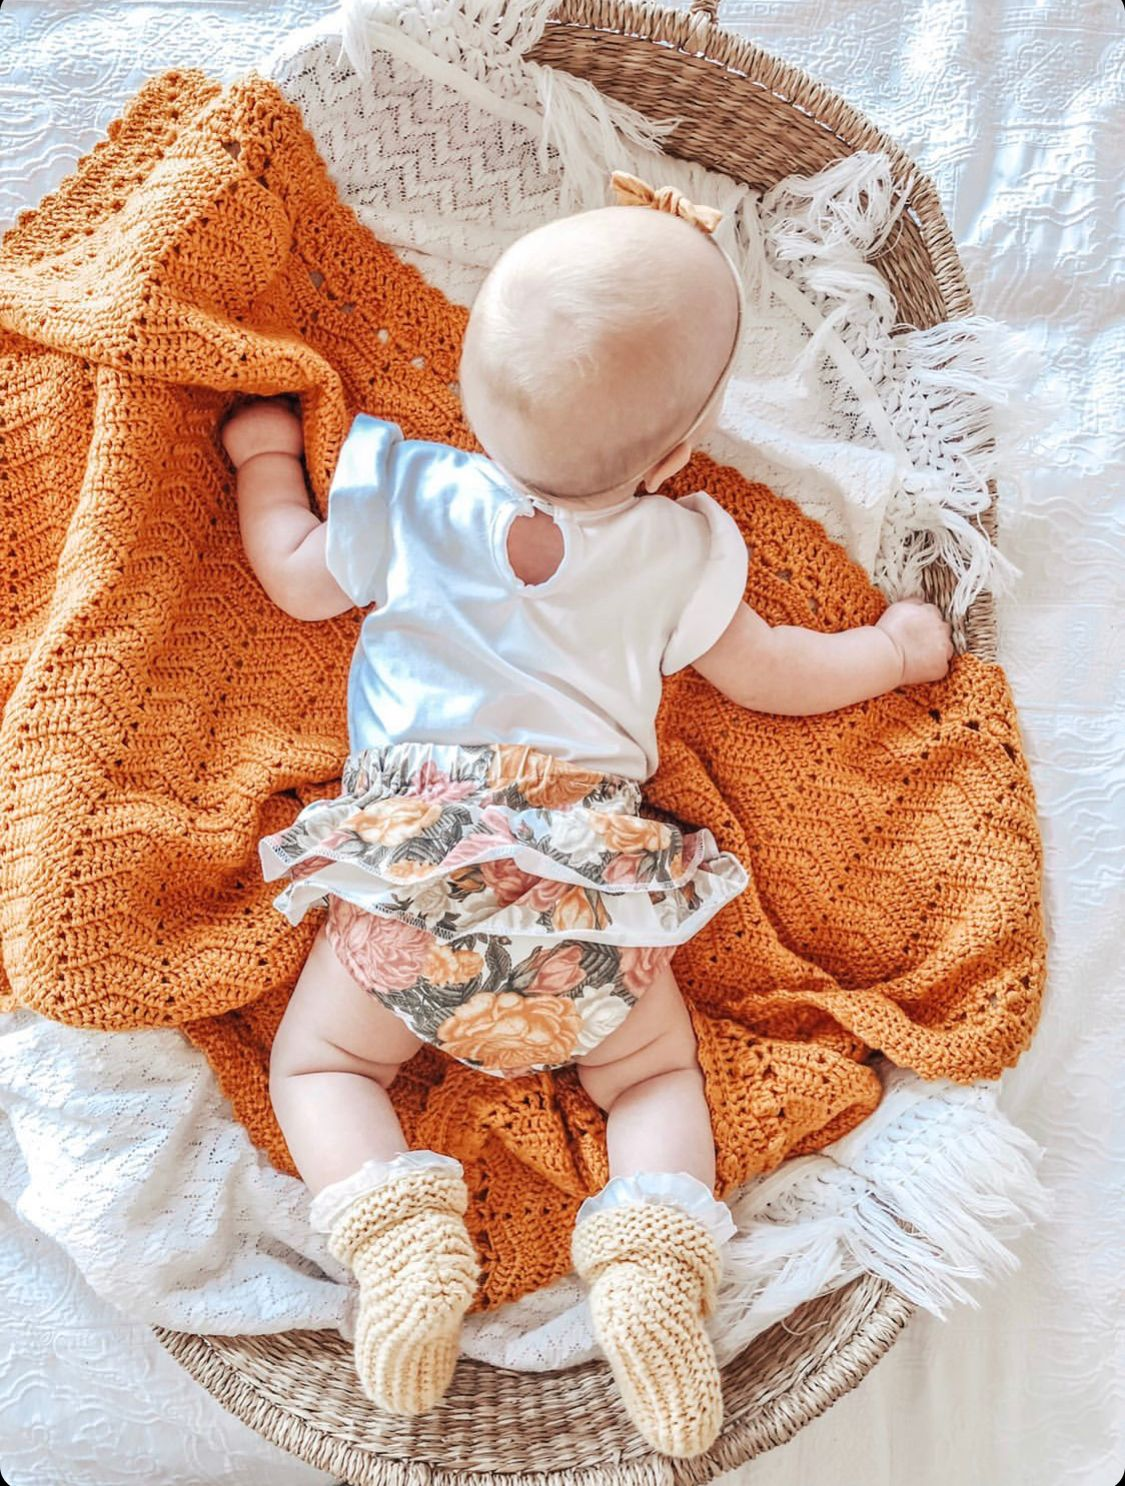 baby on turmeric ob designs blanket